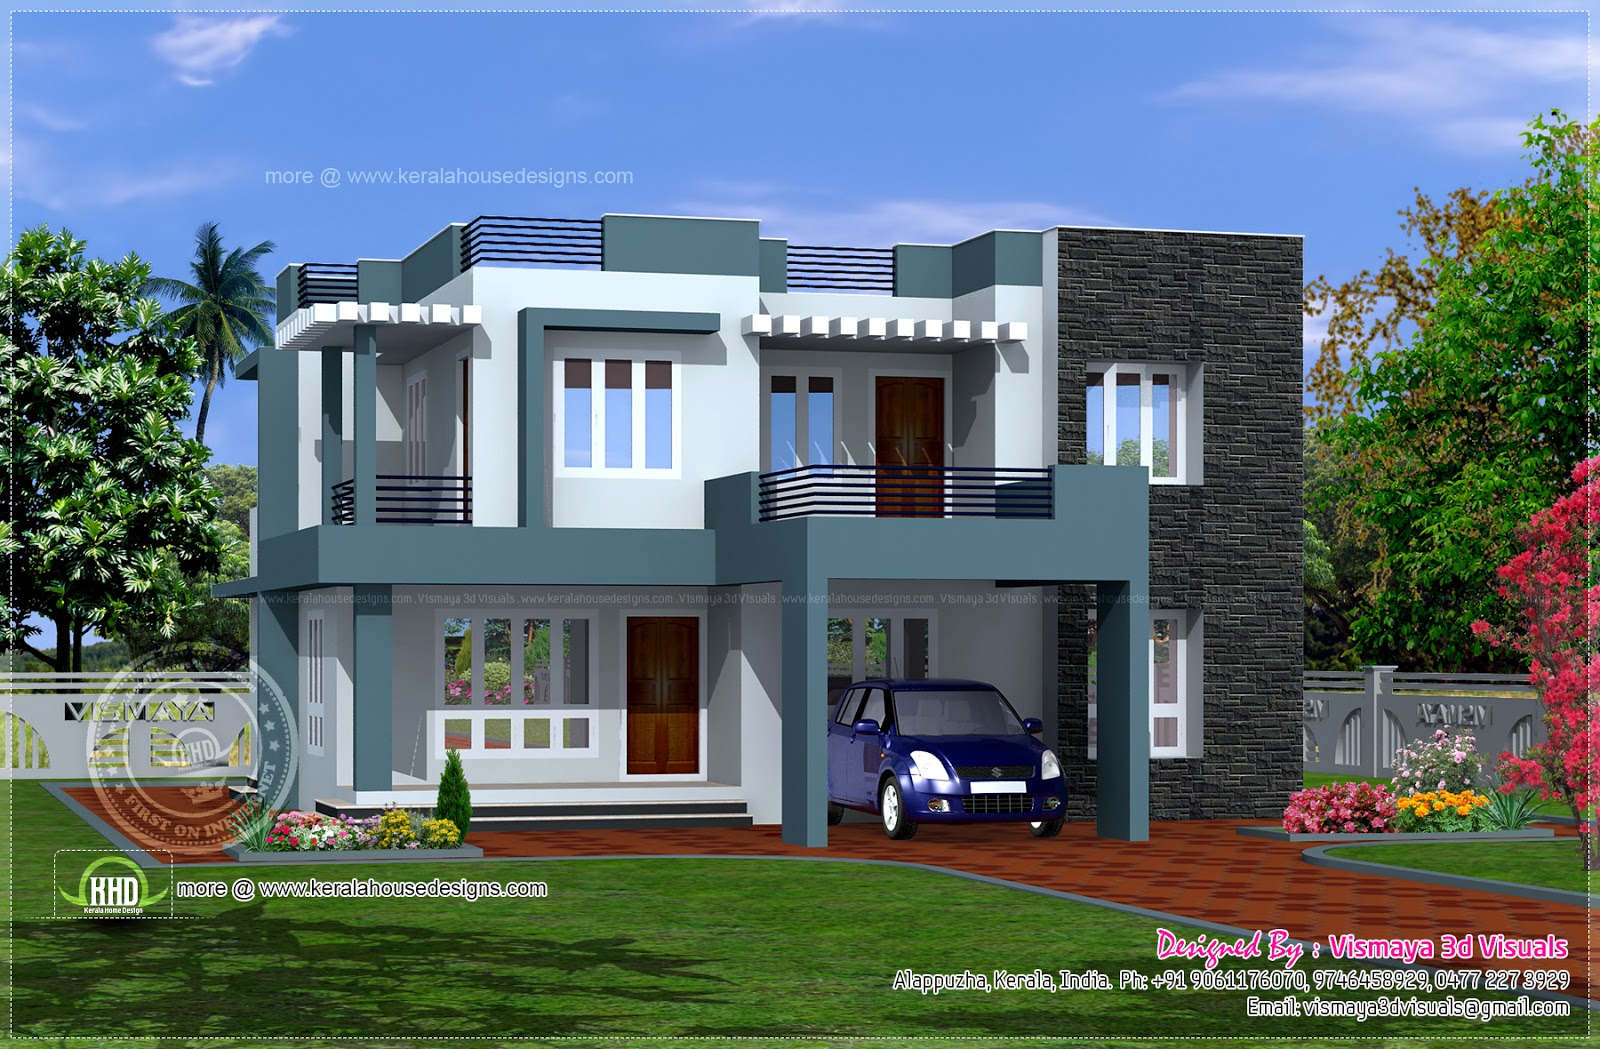 Simple contemporary style villa plan house design plans Simple modern house plans